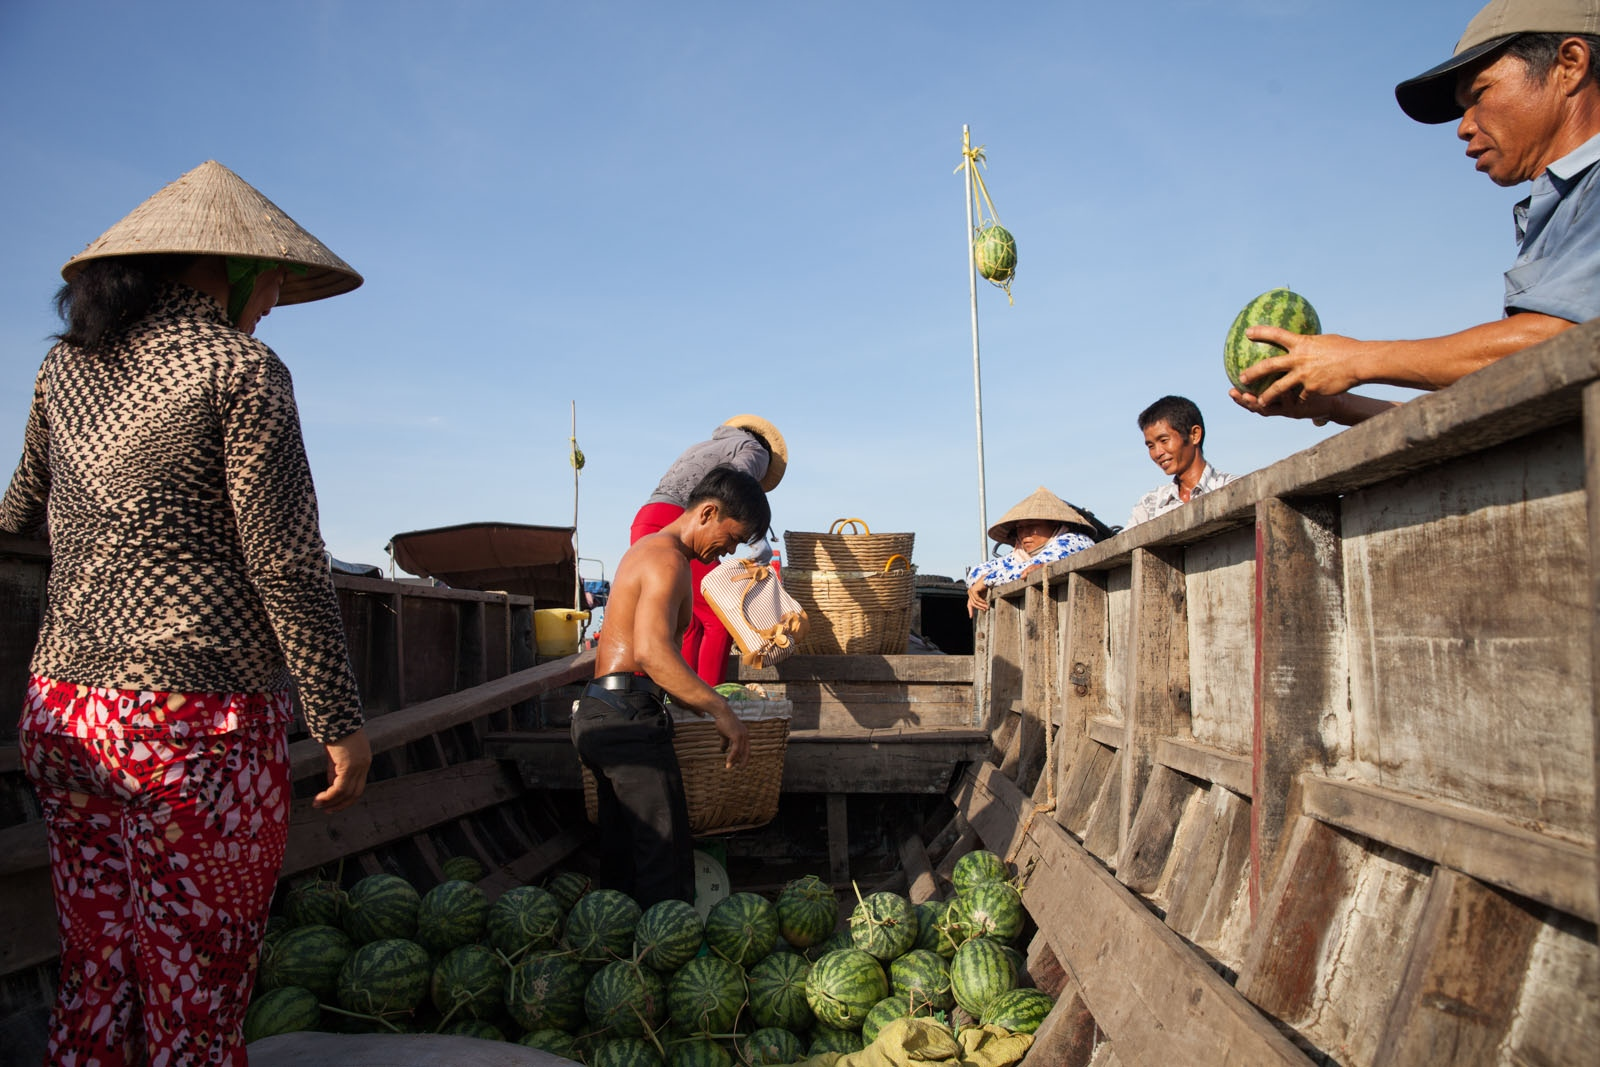 On a boat moored to a river bank customers come to purchase watermelons that have been brought downstream from the owners farm.